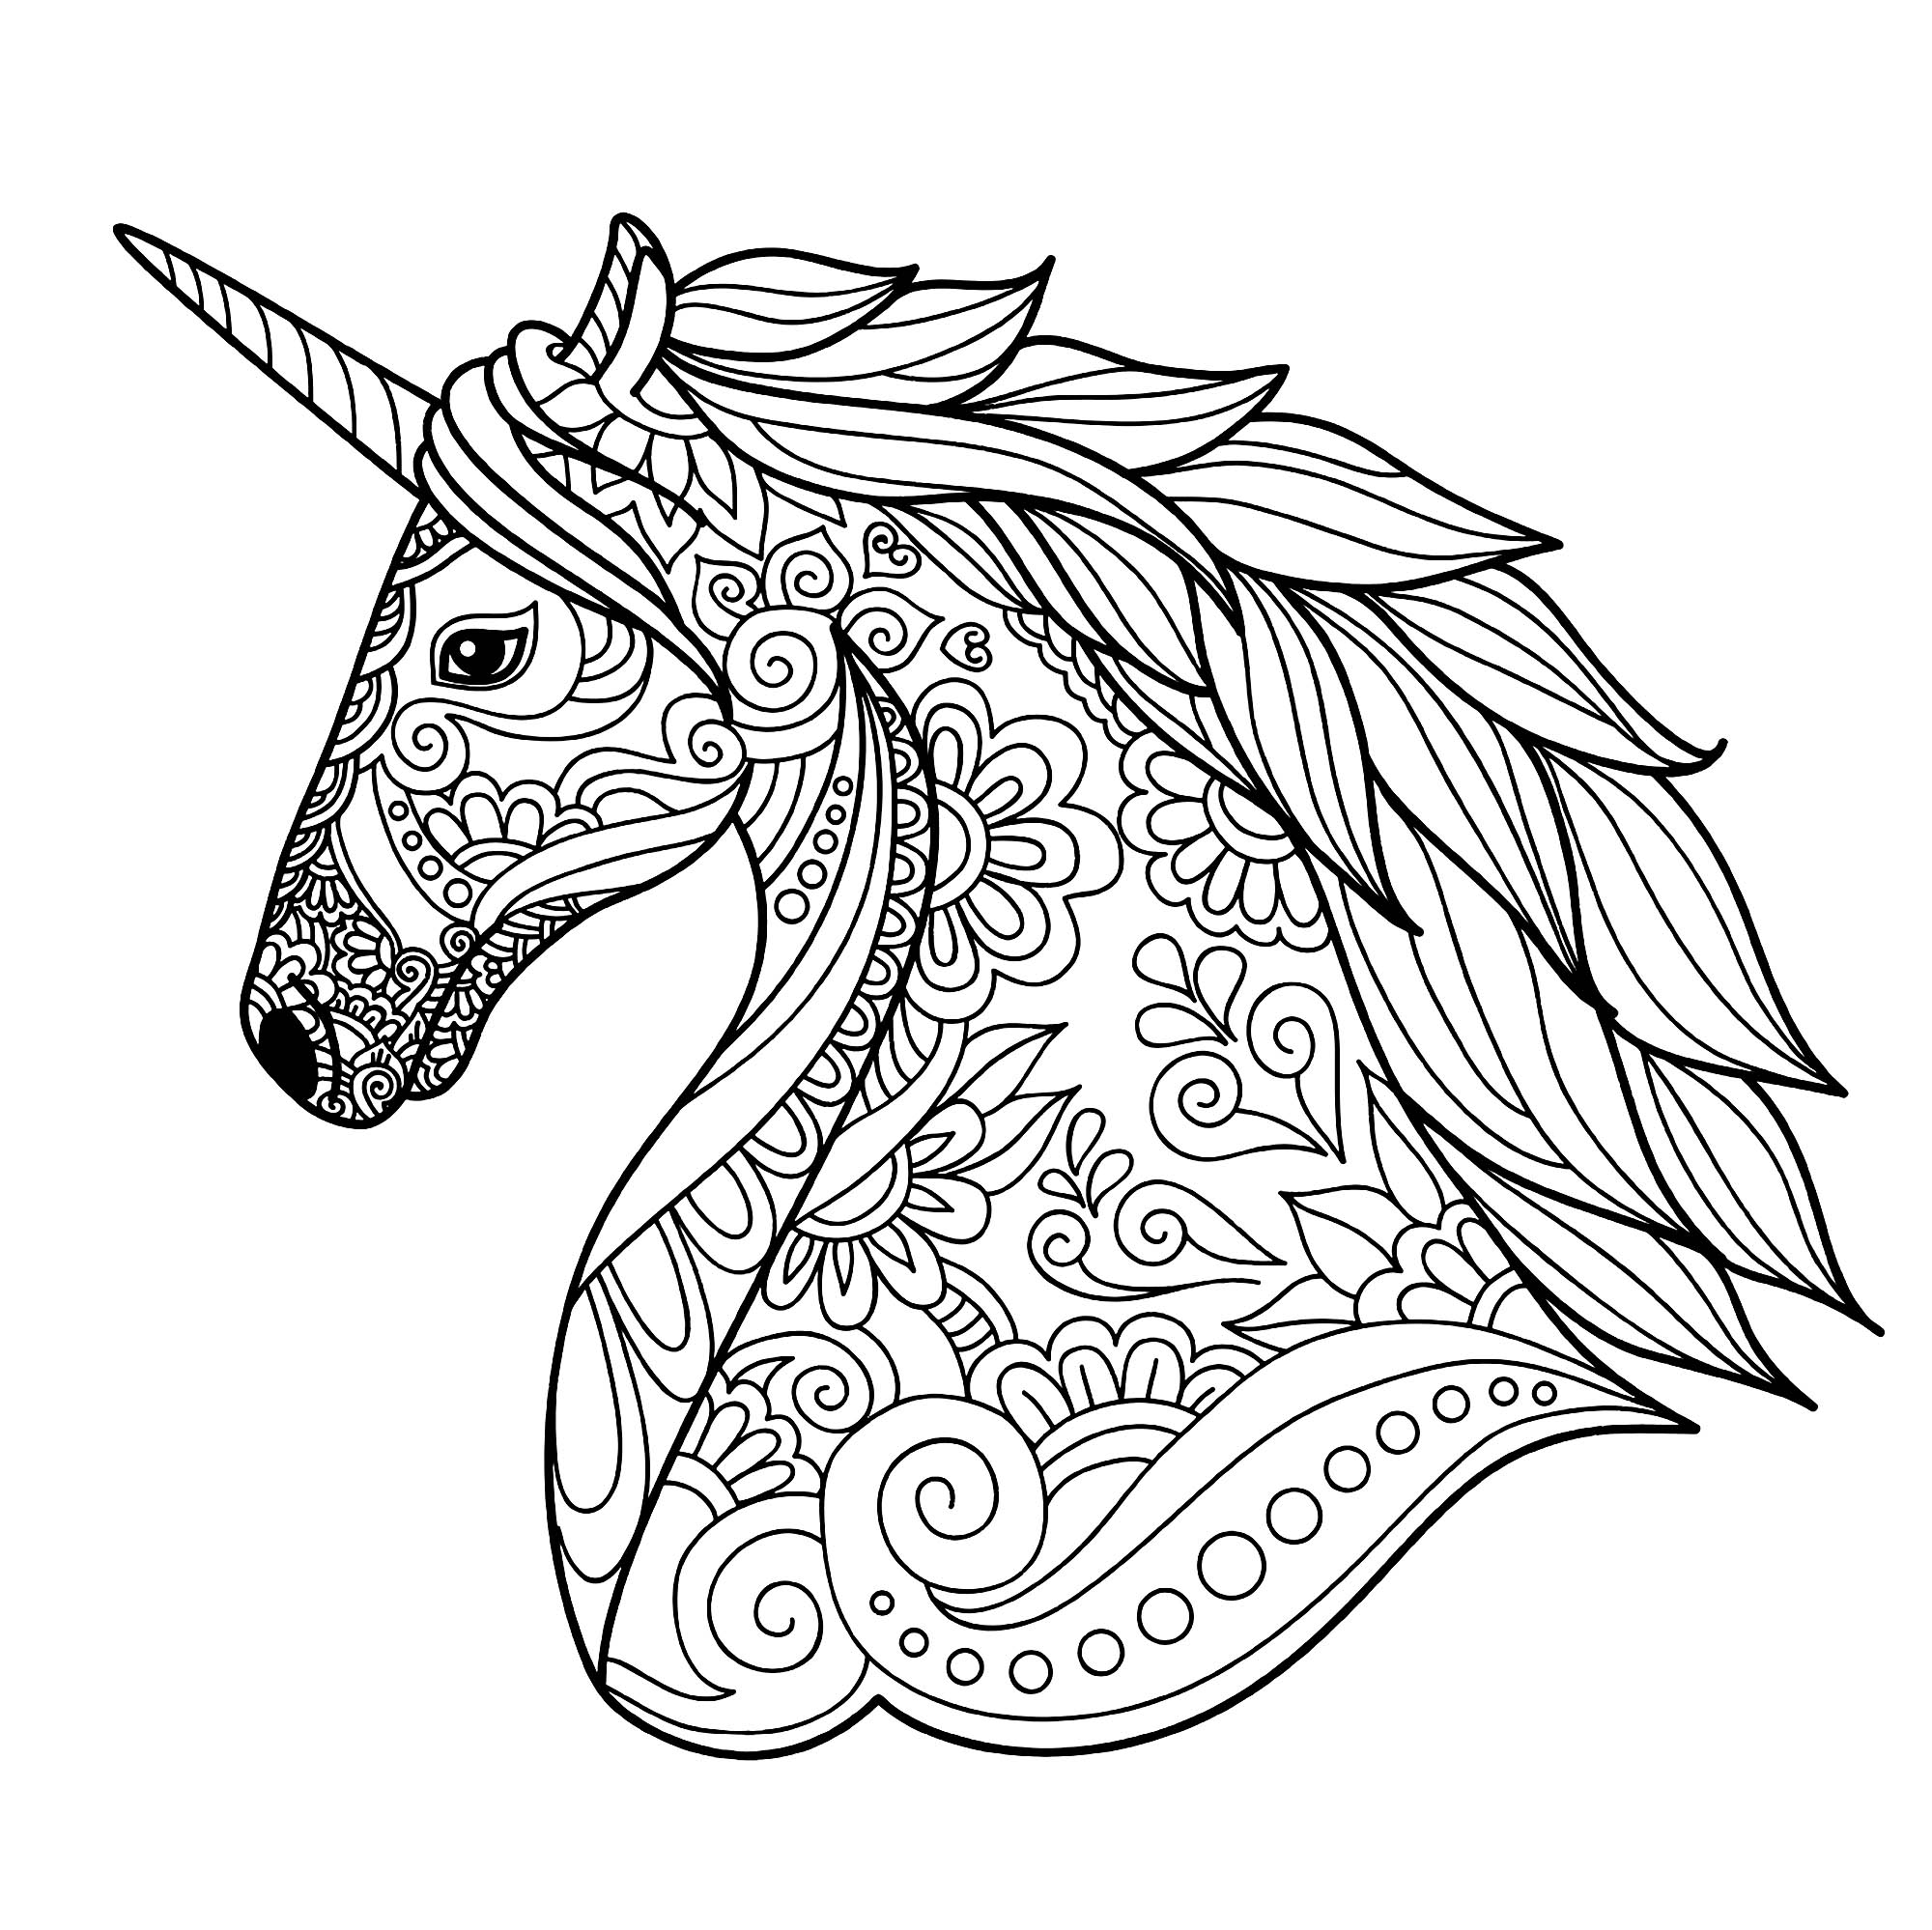 Coloring Pages Of Unicorns To Print